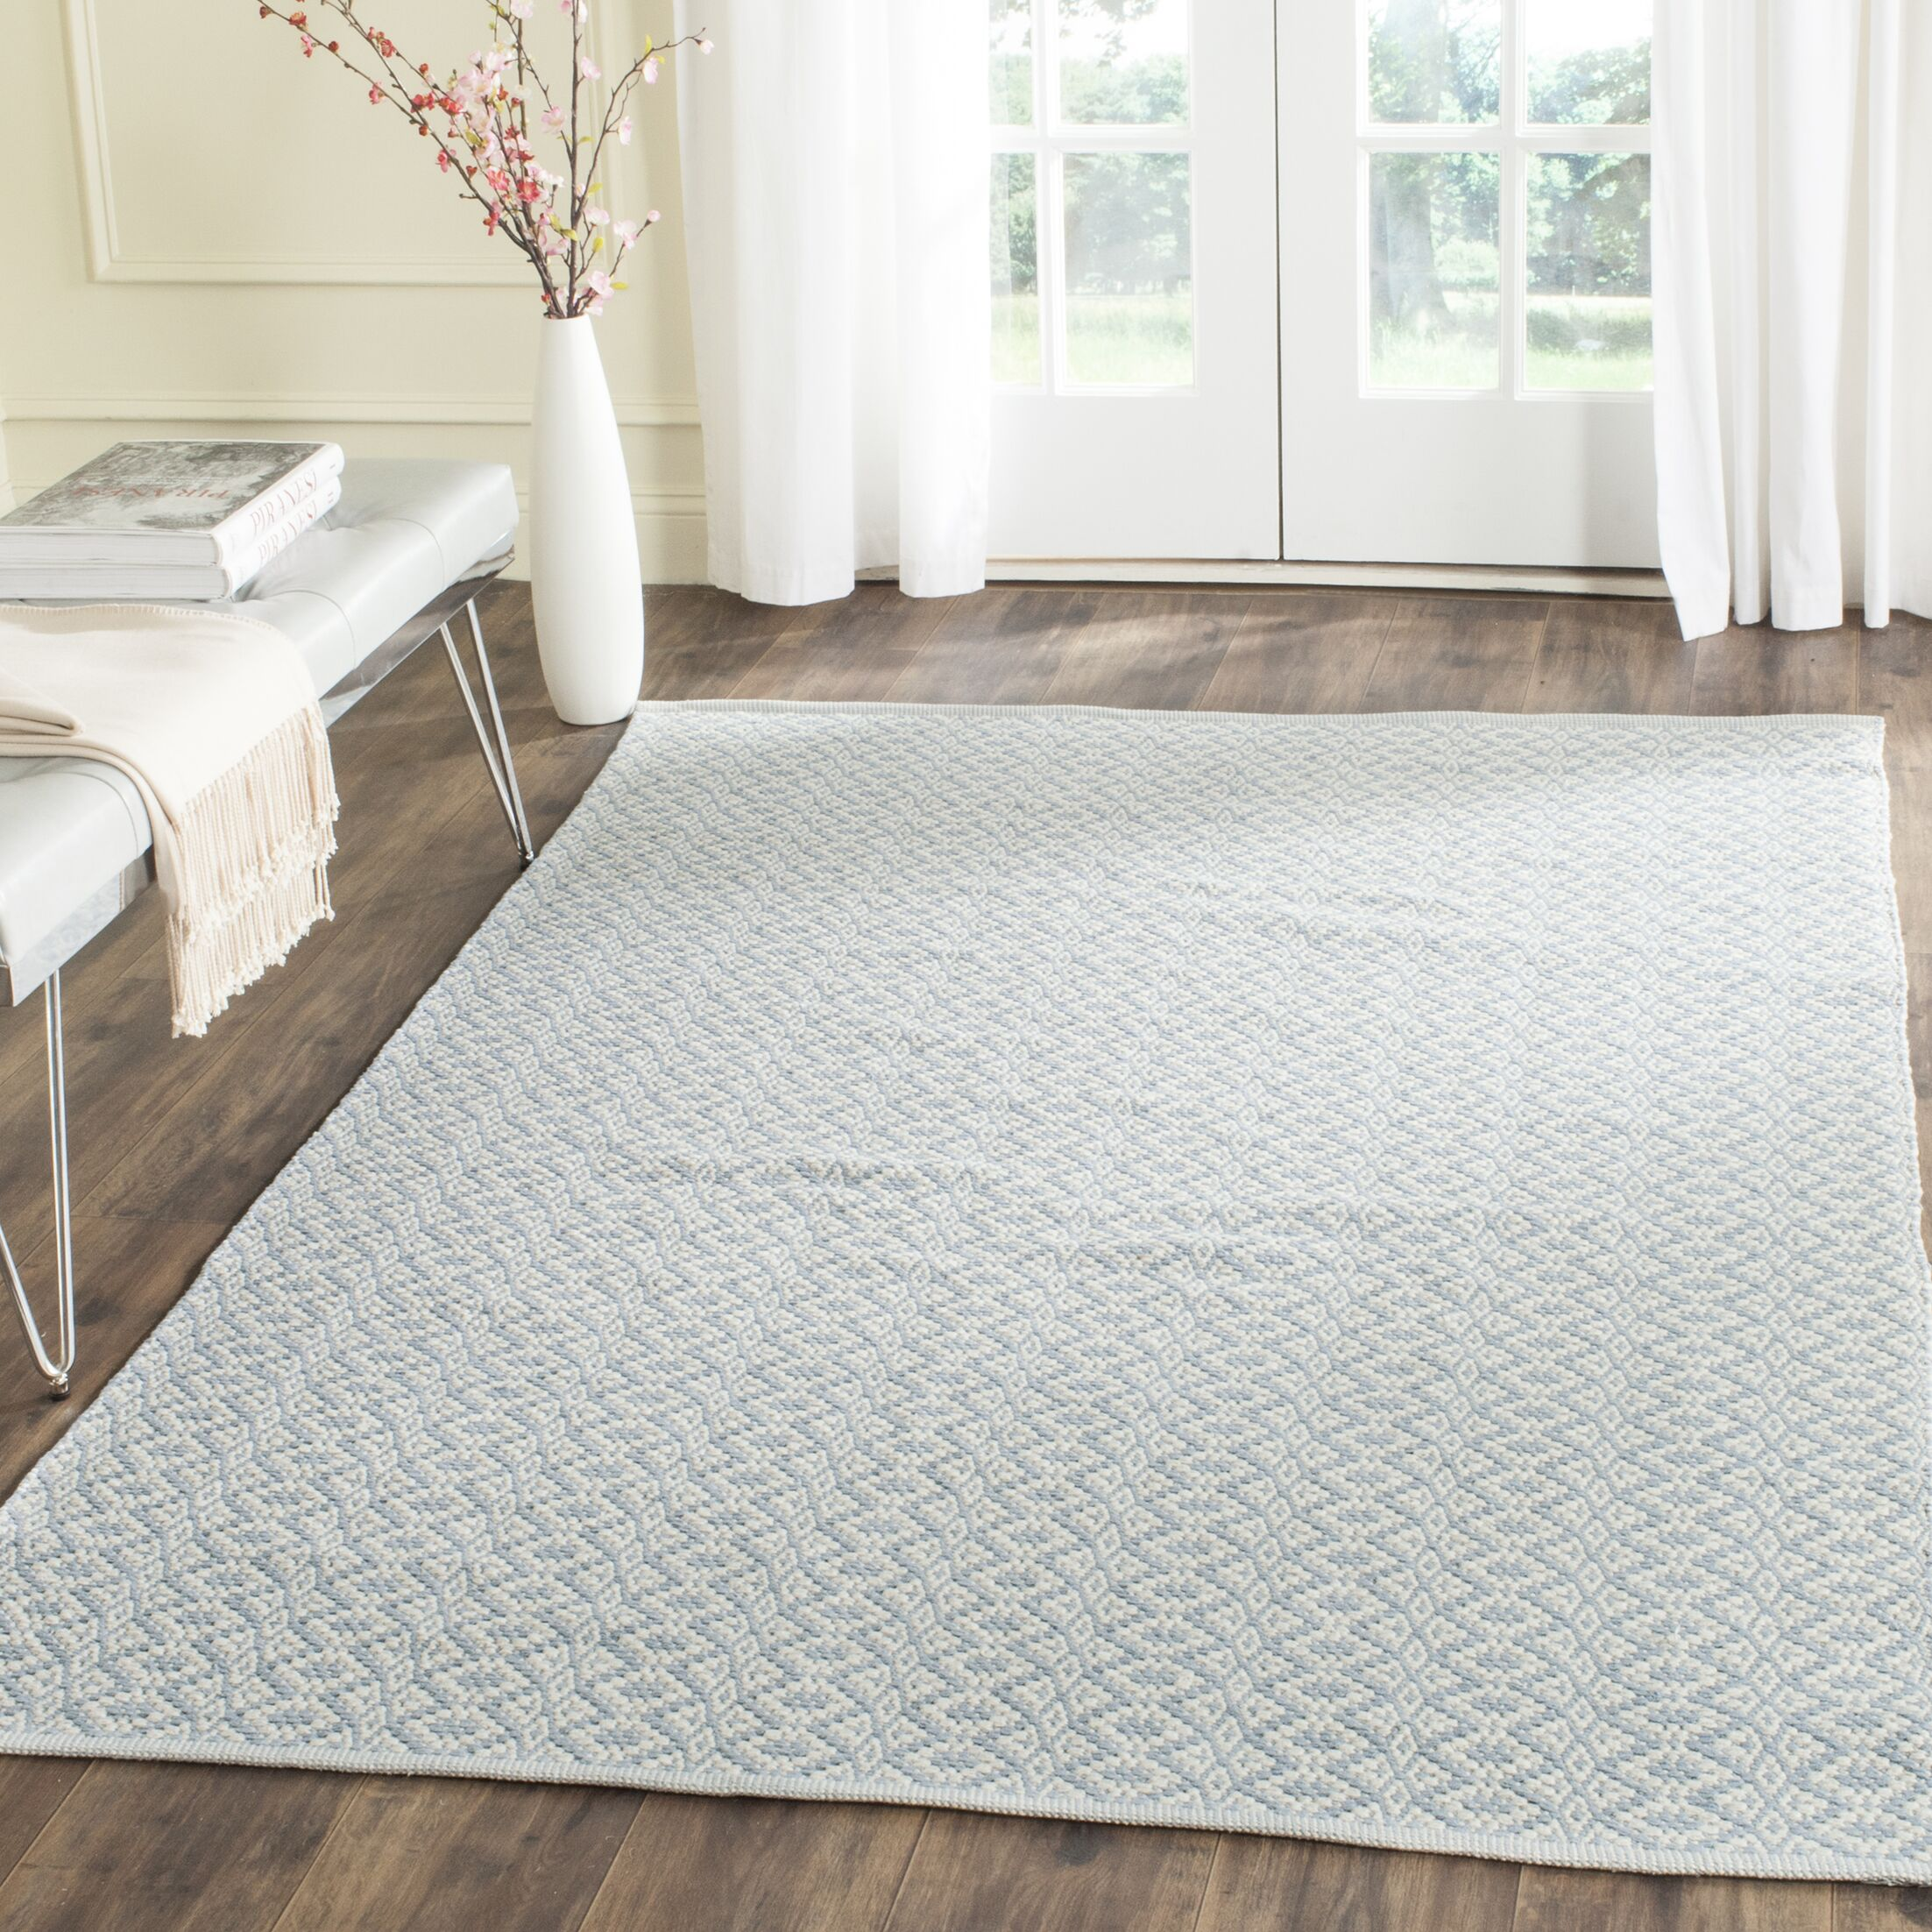 Whorton Hand Woven Ivory/Light Blue Area Rug Rug Size: Rectangle 4' x 6'